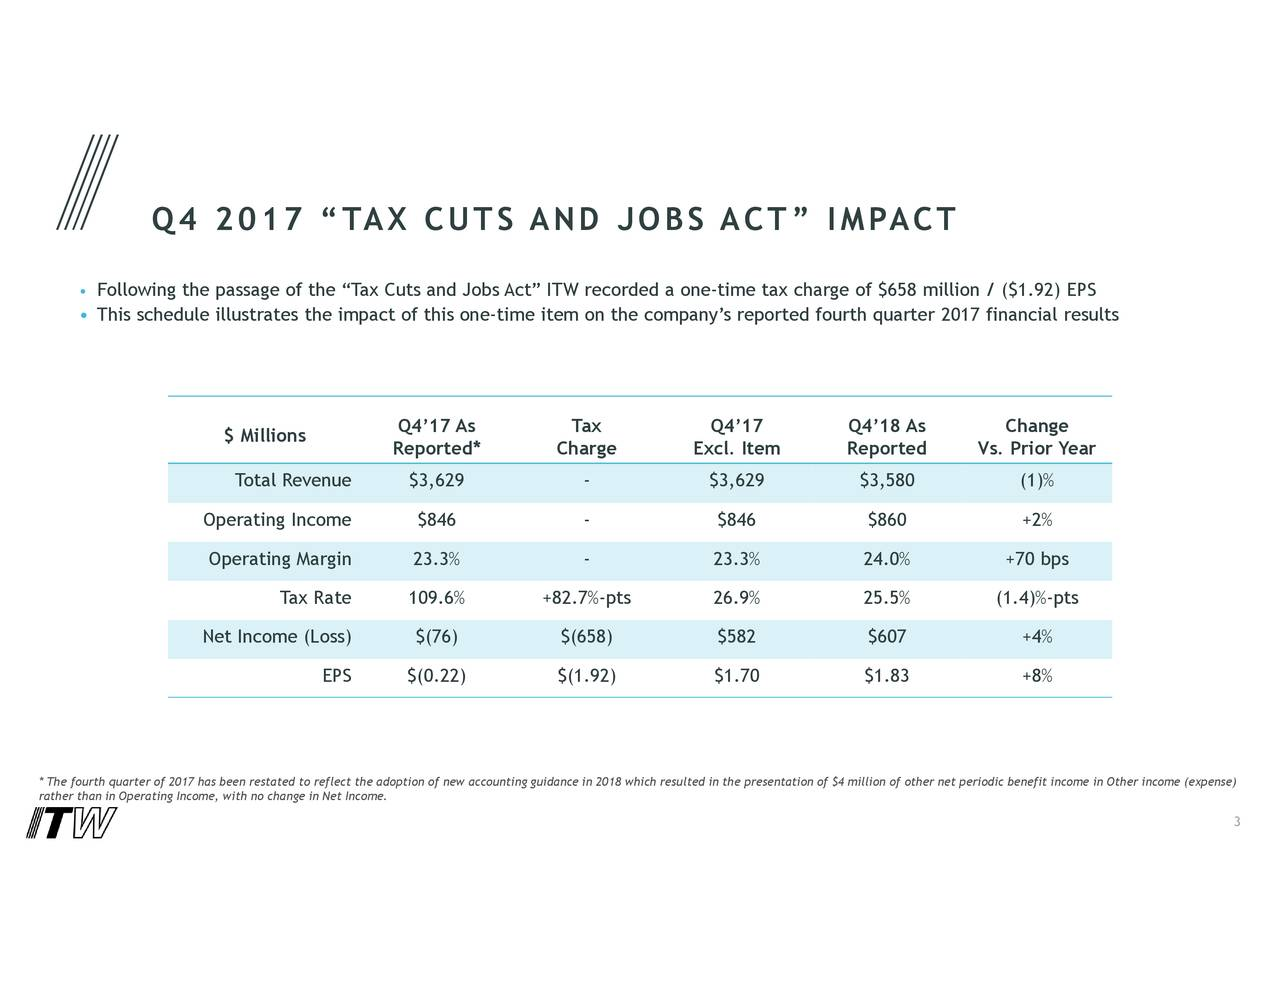 "• Following the passage of the ""Tax Cuts and Jobs Act"" ITW recorded a one-time tax charge of $658 million / ($1.92) EPS • This schedule illustrates the impact of this one-time item on the company's reported fourth quarter 2017 financial results Q4'17 As Tax Q4'17 Q4'18 As Change $ Millions Reported* Charge Excl. Item Reported Vs. Prior Year Total Revenue $3,629 - $3,629 $3,580 (1)% Operating Income $846 - $846 $860 +2% Operating Margin 23.3% - 23.3% 24.0% +70 bps Tax Rate 109.6% +82.7%-pts 26.9% 25.5% (1.4)%-pts Net Income (Loss) $(76) $(658) $582 $607 +4% EPS $(0.22) $(1.92) $1.70 $1.83 +8% * The fourth quarter of 2017 has been restated to reflect the adoption of new accounting guidance in 2018 which resulted in the presentation of $4 million of other net periodic benefit income in Other income (expense) rather than in Operating Income, with no change in Net Income. 3"